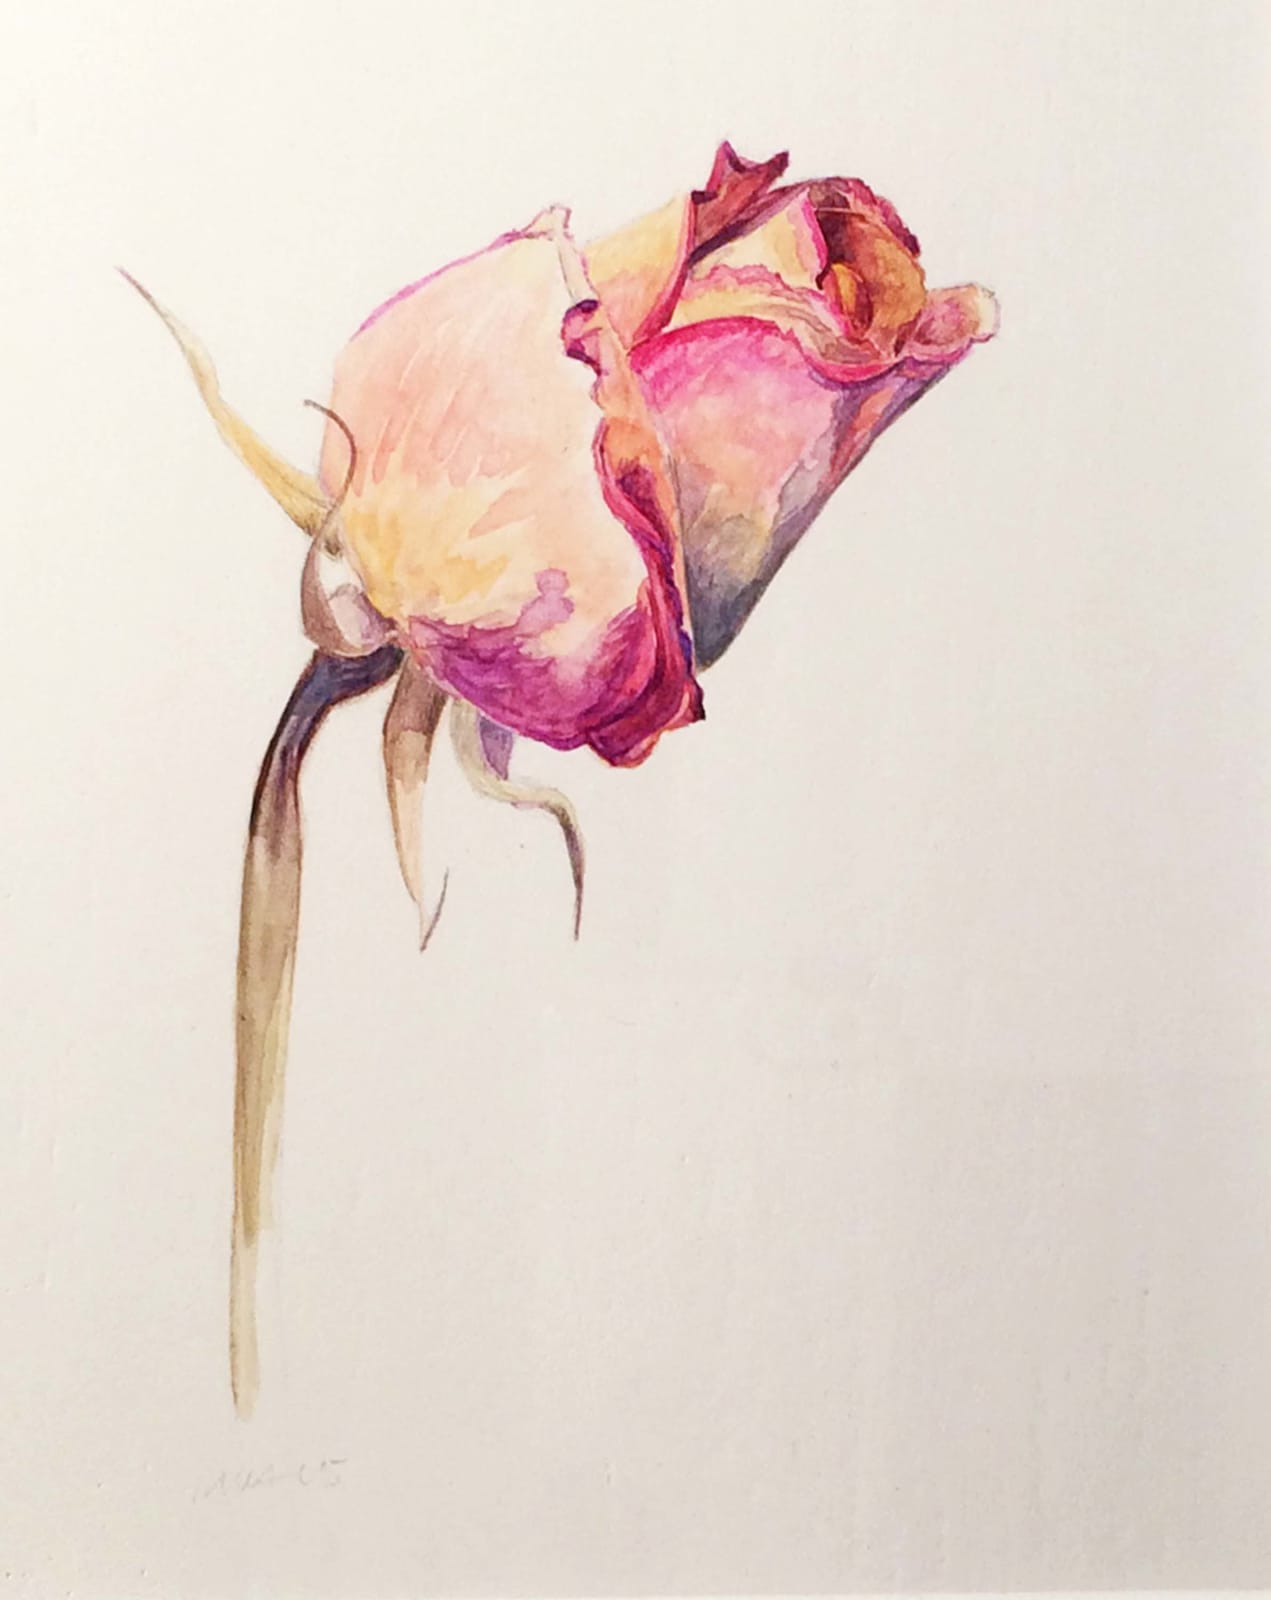 Marjorie Williams-Smith, Pink Rose, 2007